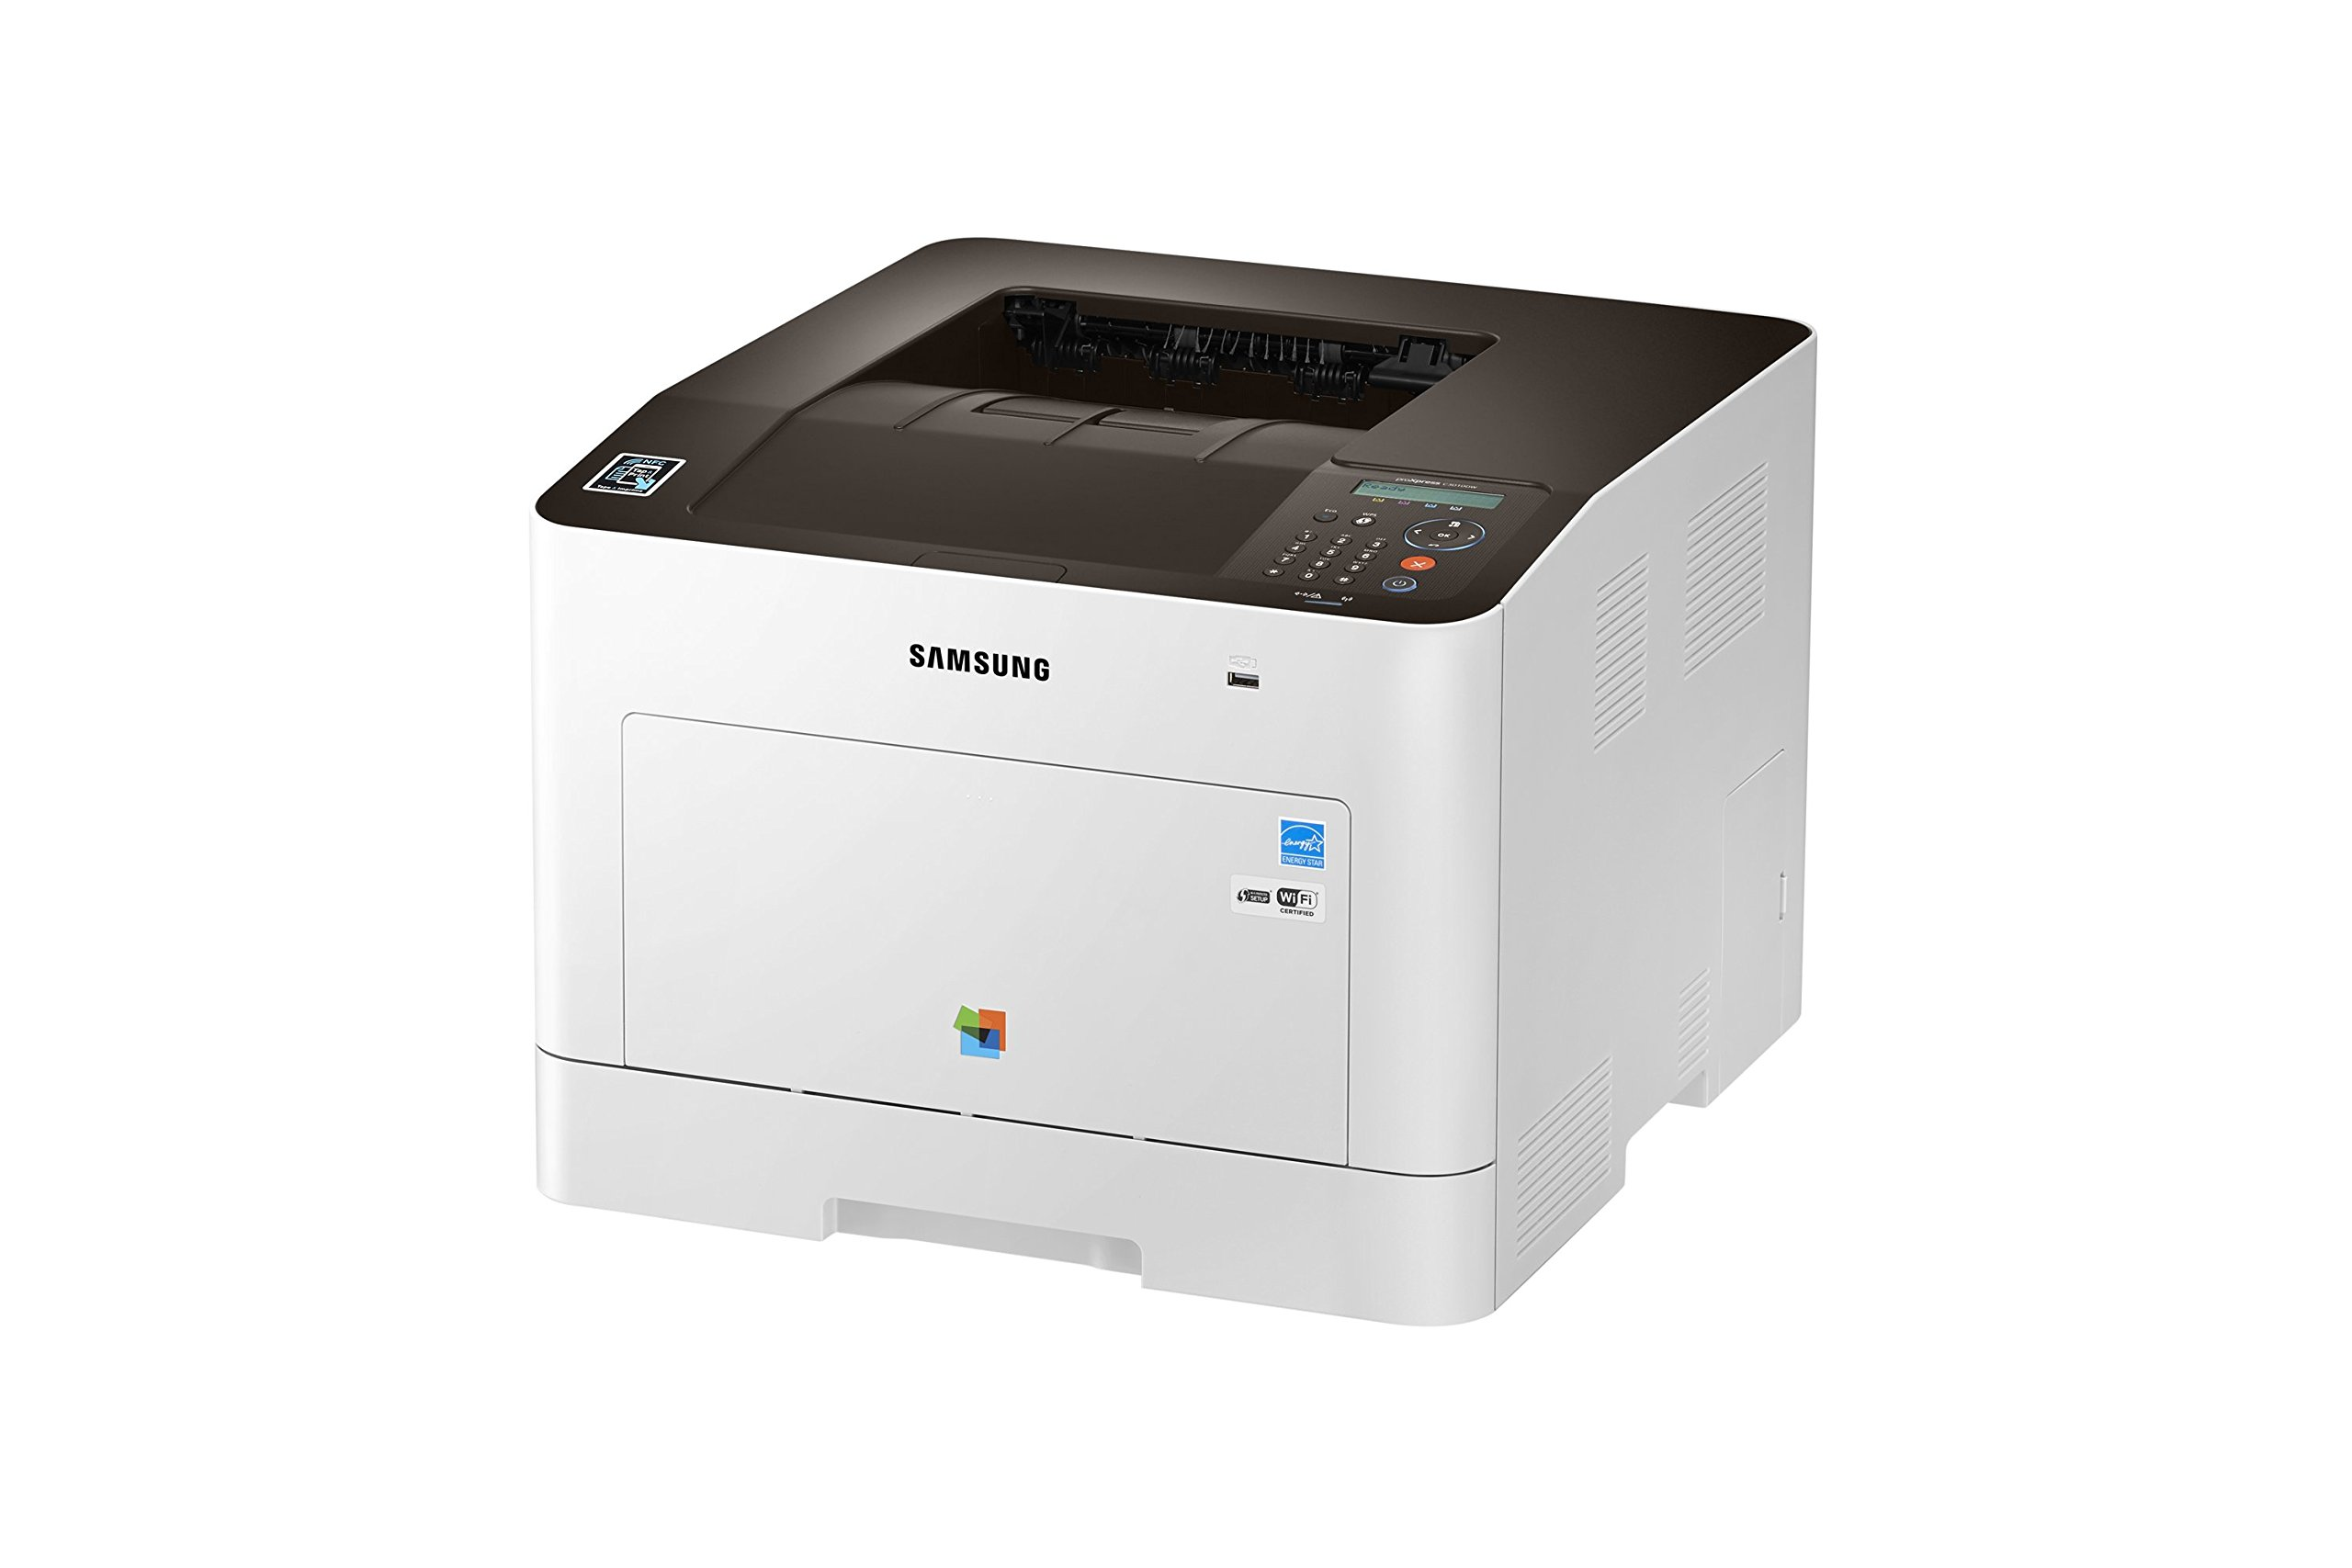 Samsung Electronics SL-C3010DW Wireless Color Printer, Amazon Dash Replenishment Enabled by Samsung